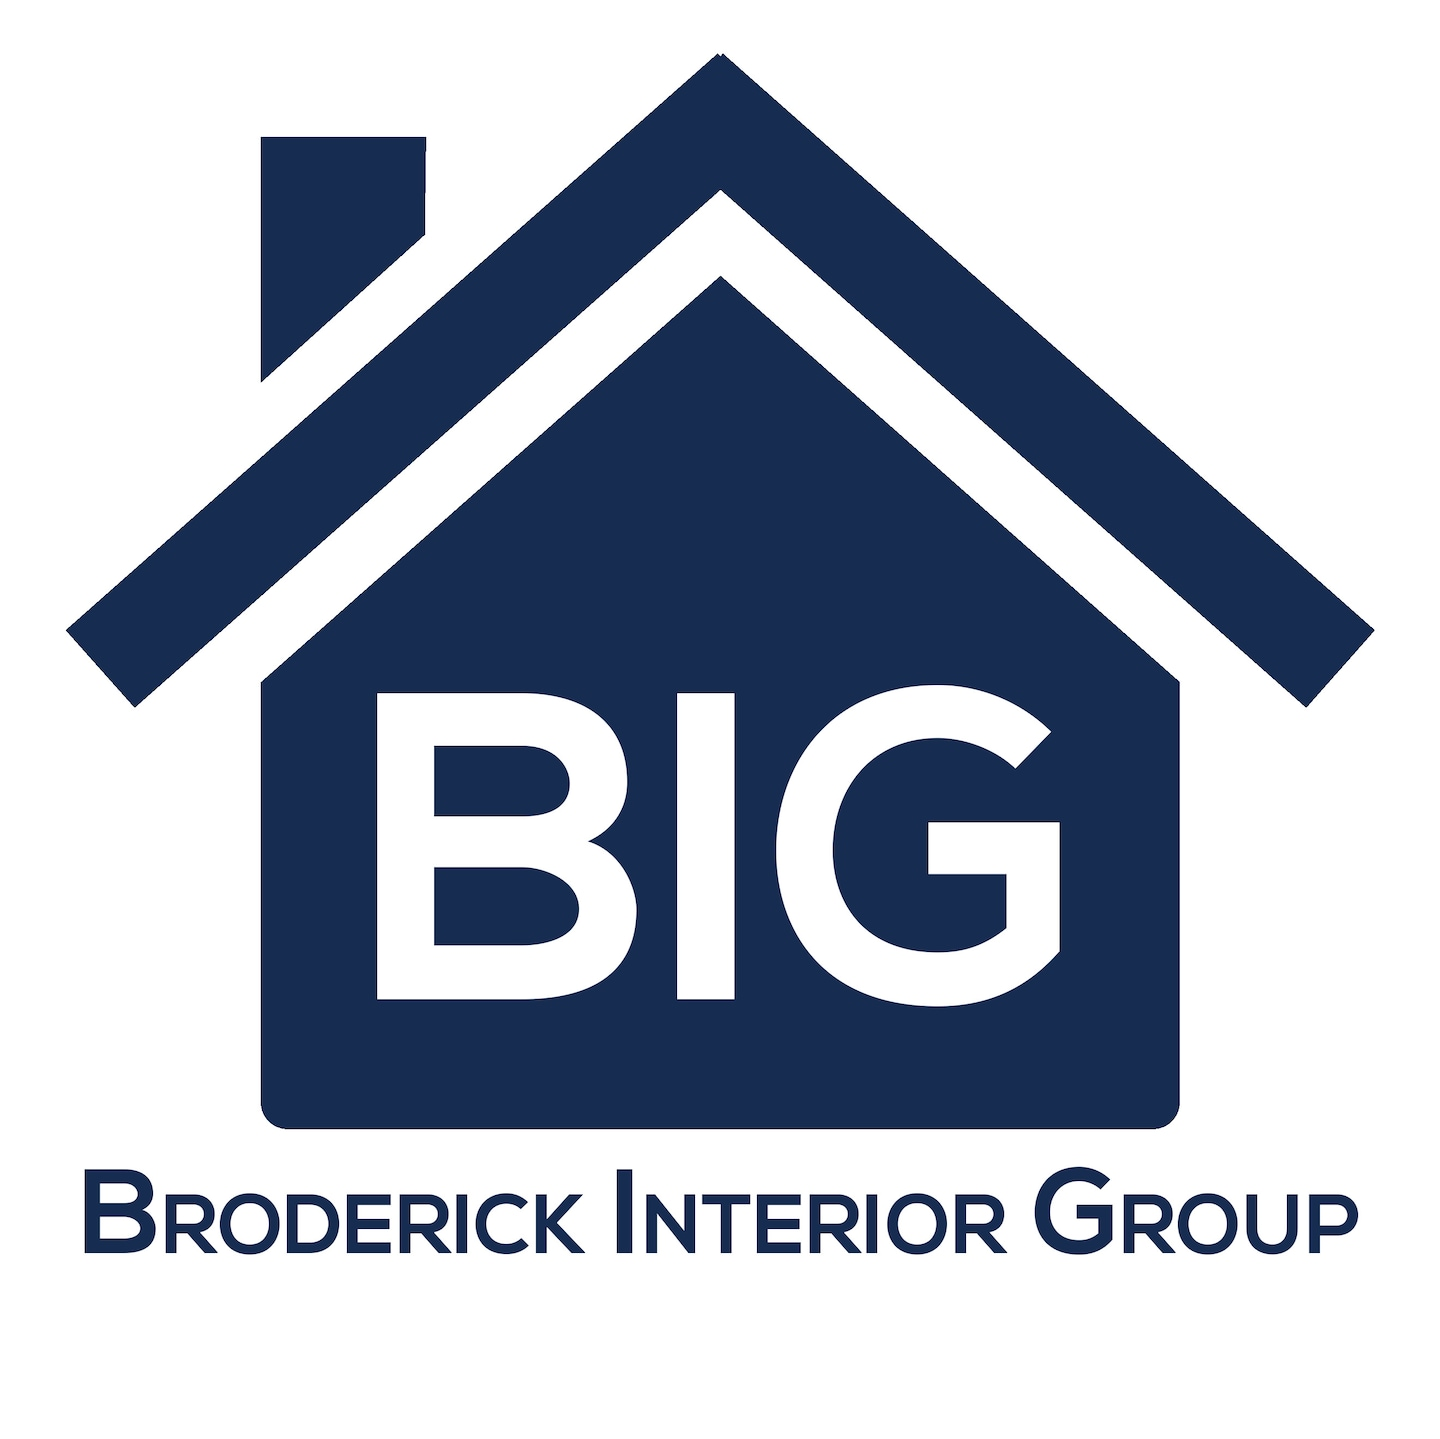 Broderick Interior Group